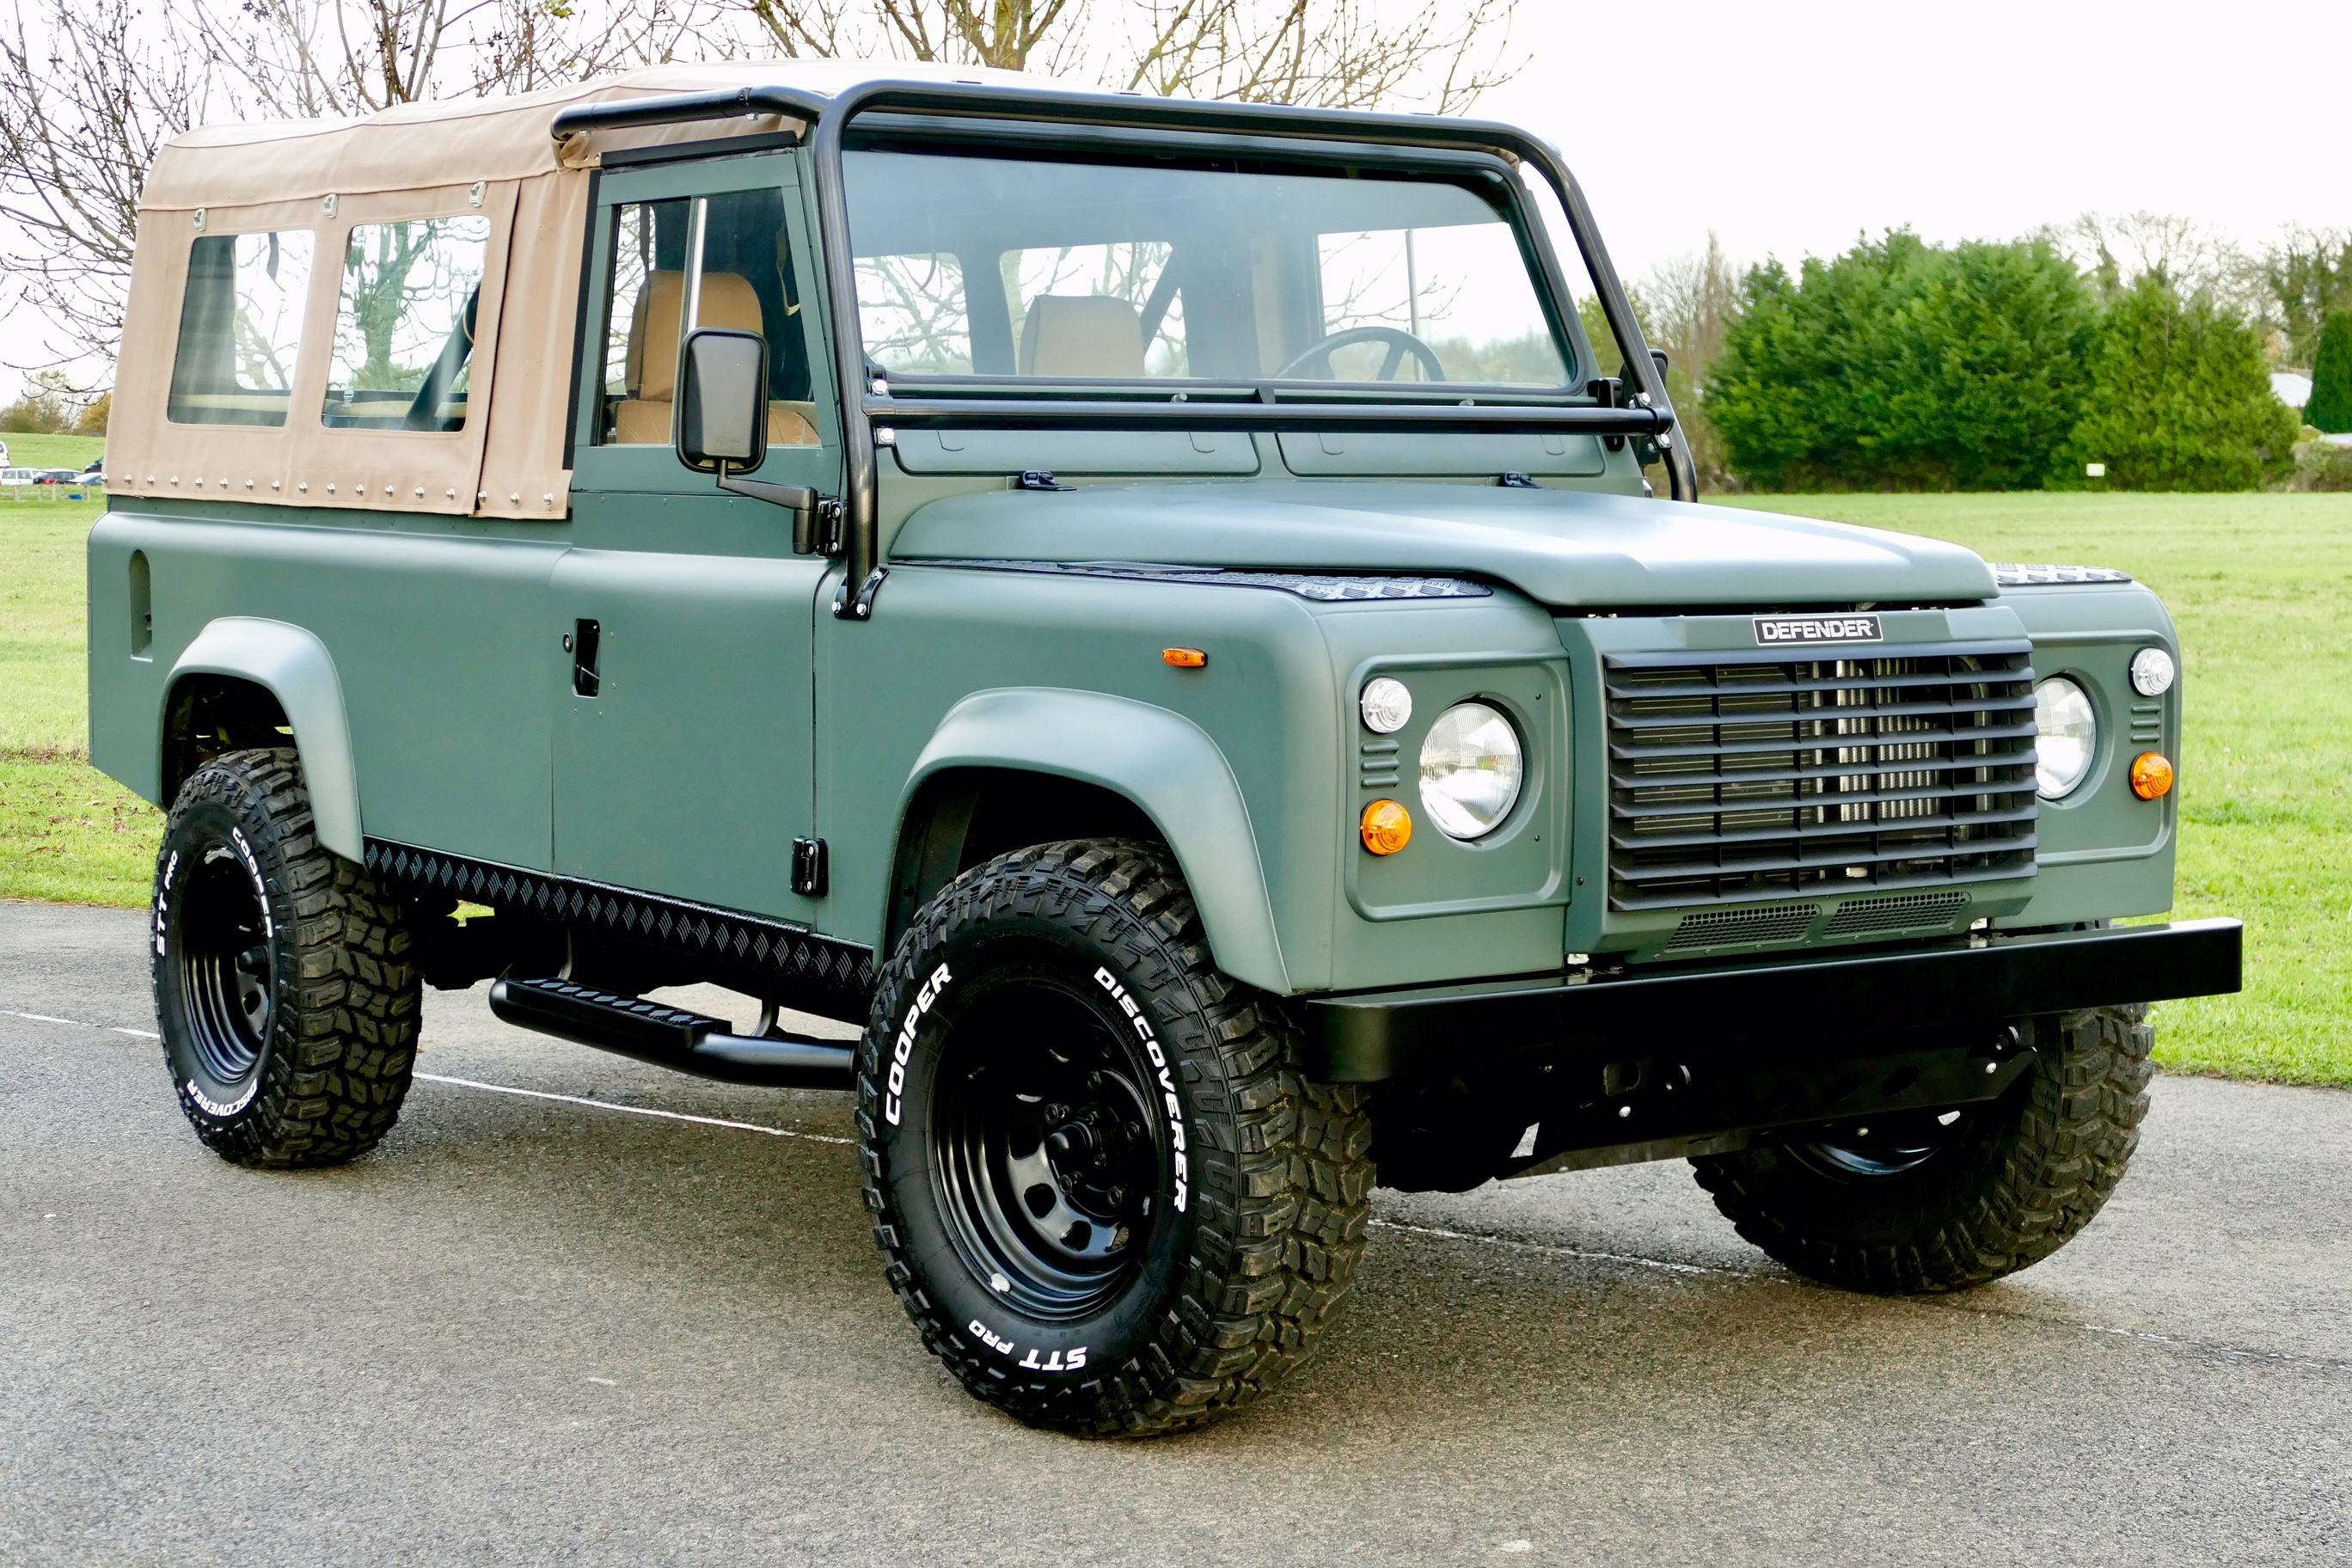 Land Rover Defender 110 Lhd Bespoke Soft Top Usa Exportable